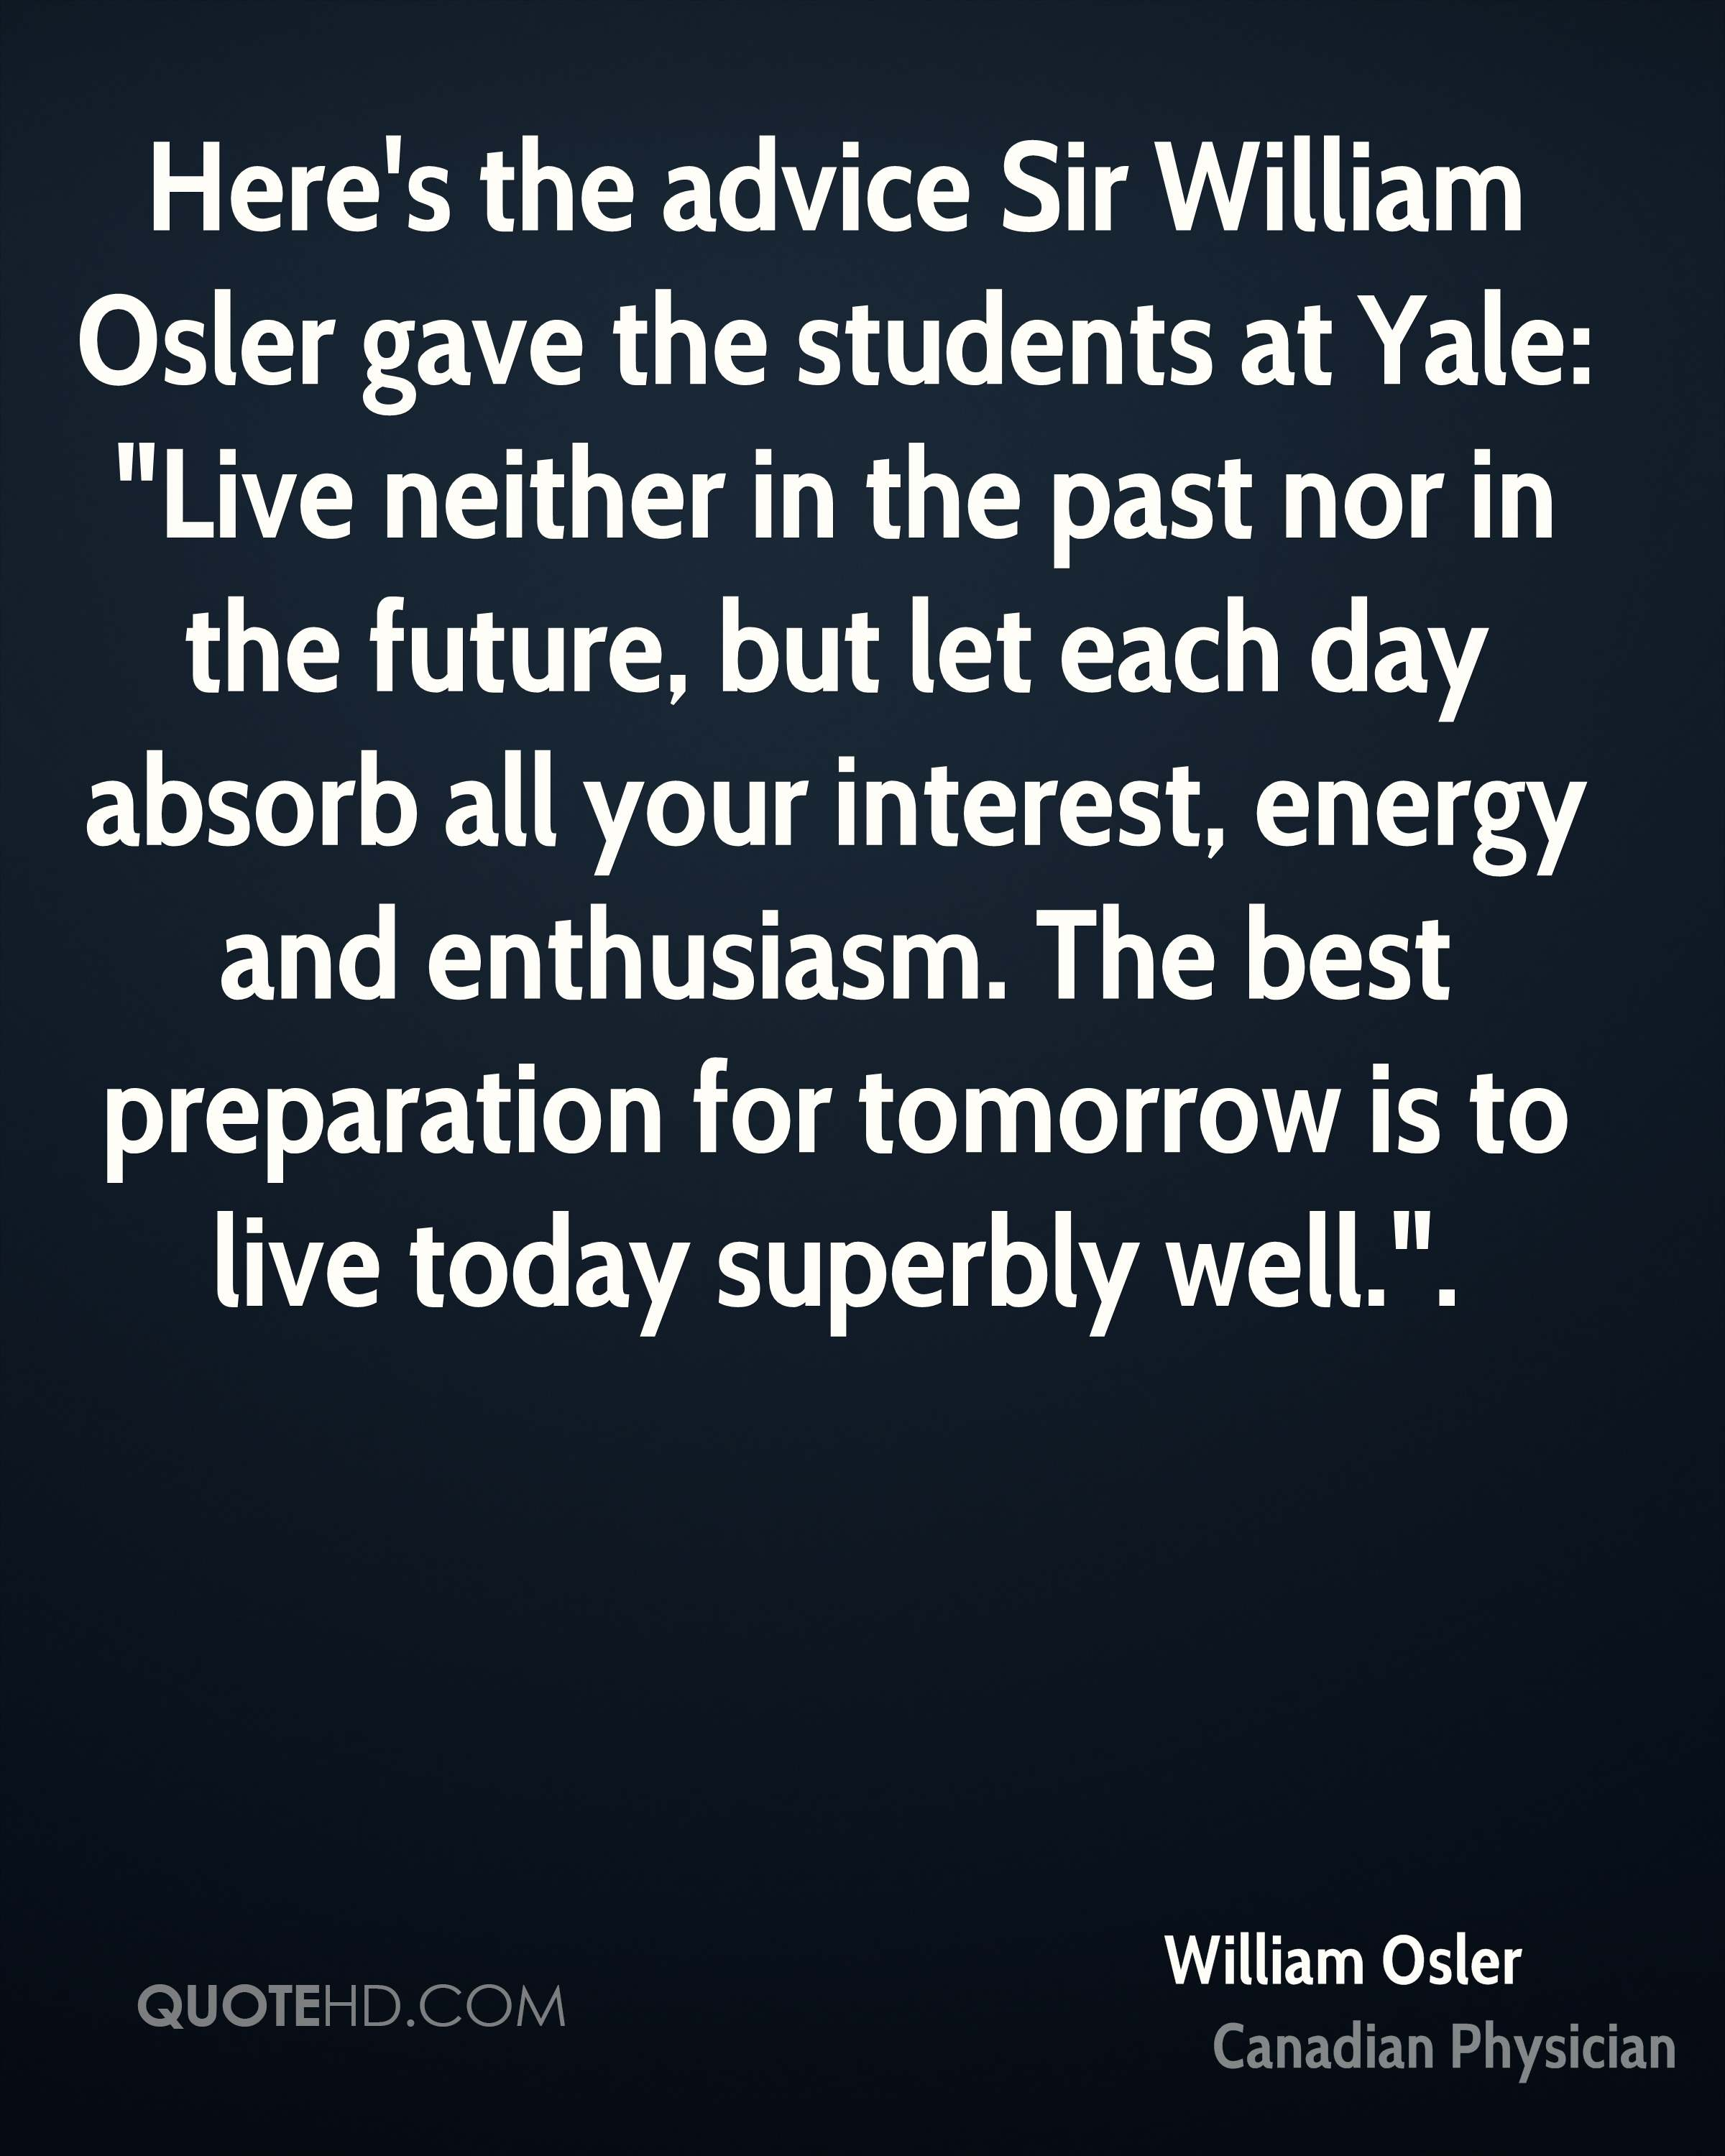 "Here's the advice Sir William Osler gave the students at Yale: ""Live neither in the past nor in the future, but let each day absorb all your interest, energy and enthusiasm. The best preparation for tomorrow is to live today superbly well.""."